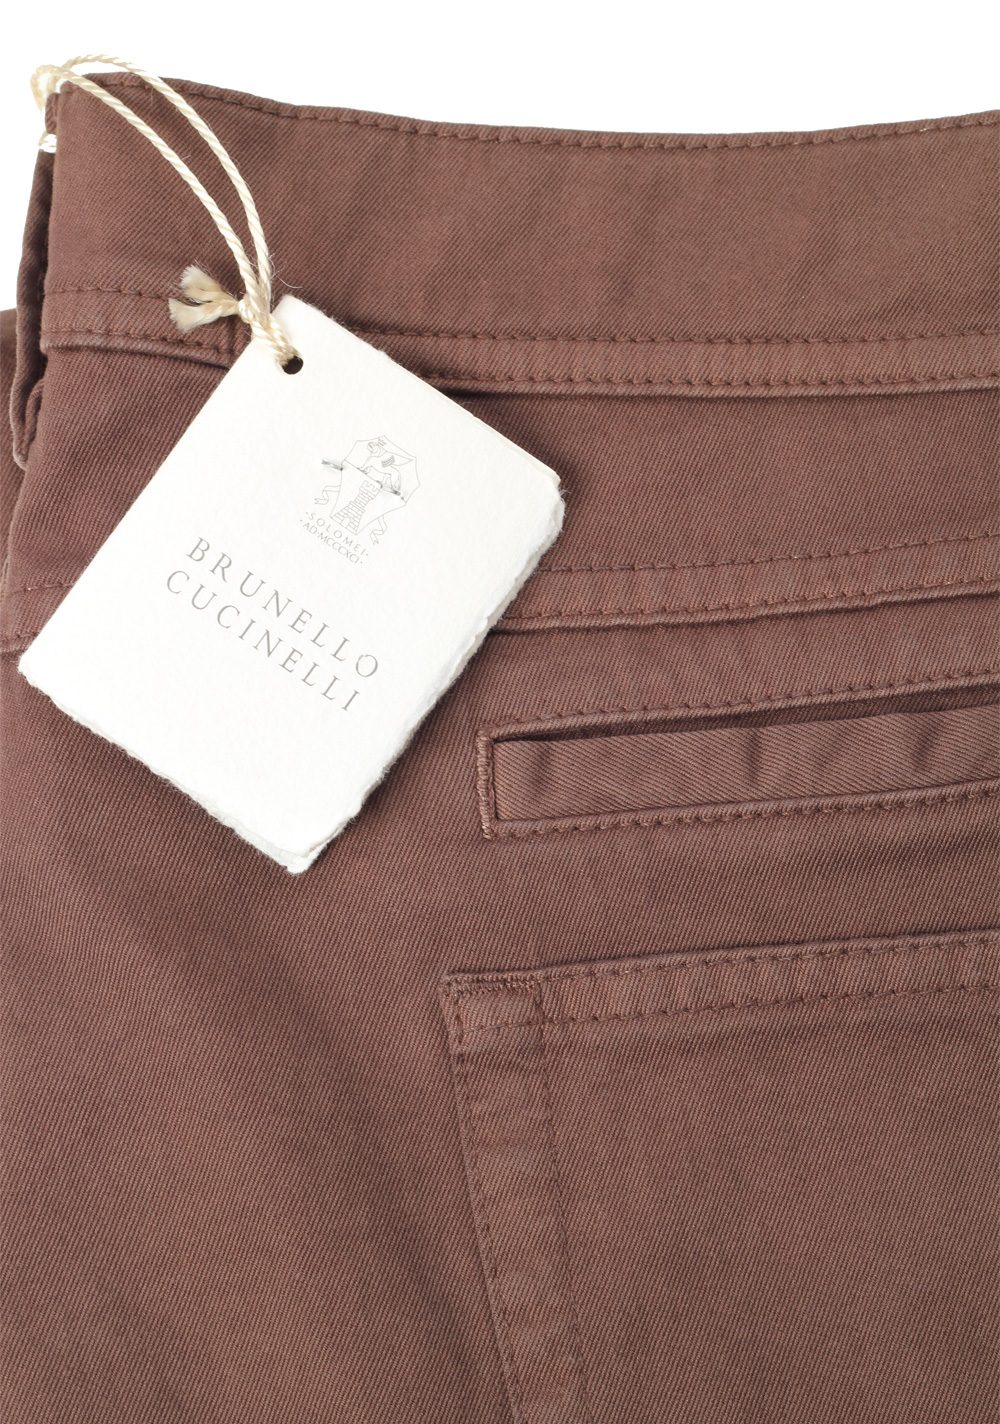 Brunello Cucinelli Brown Trousers Size 56 / 40 U.S. | Costume Limité